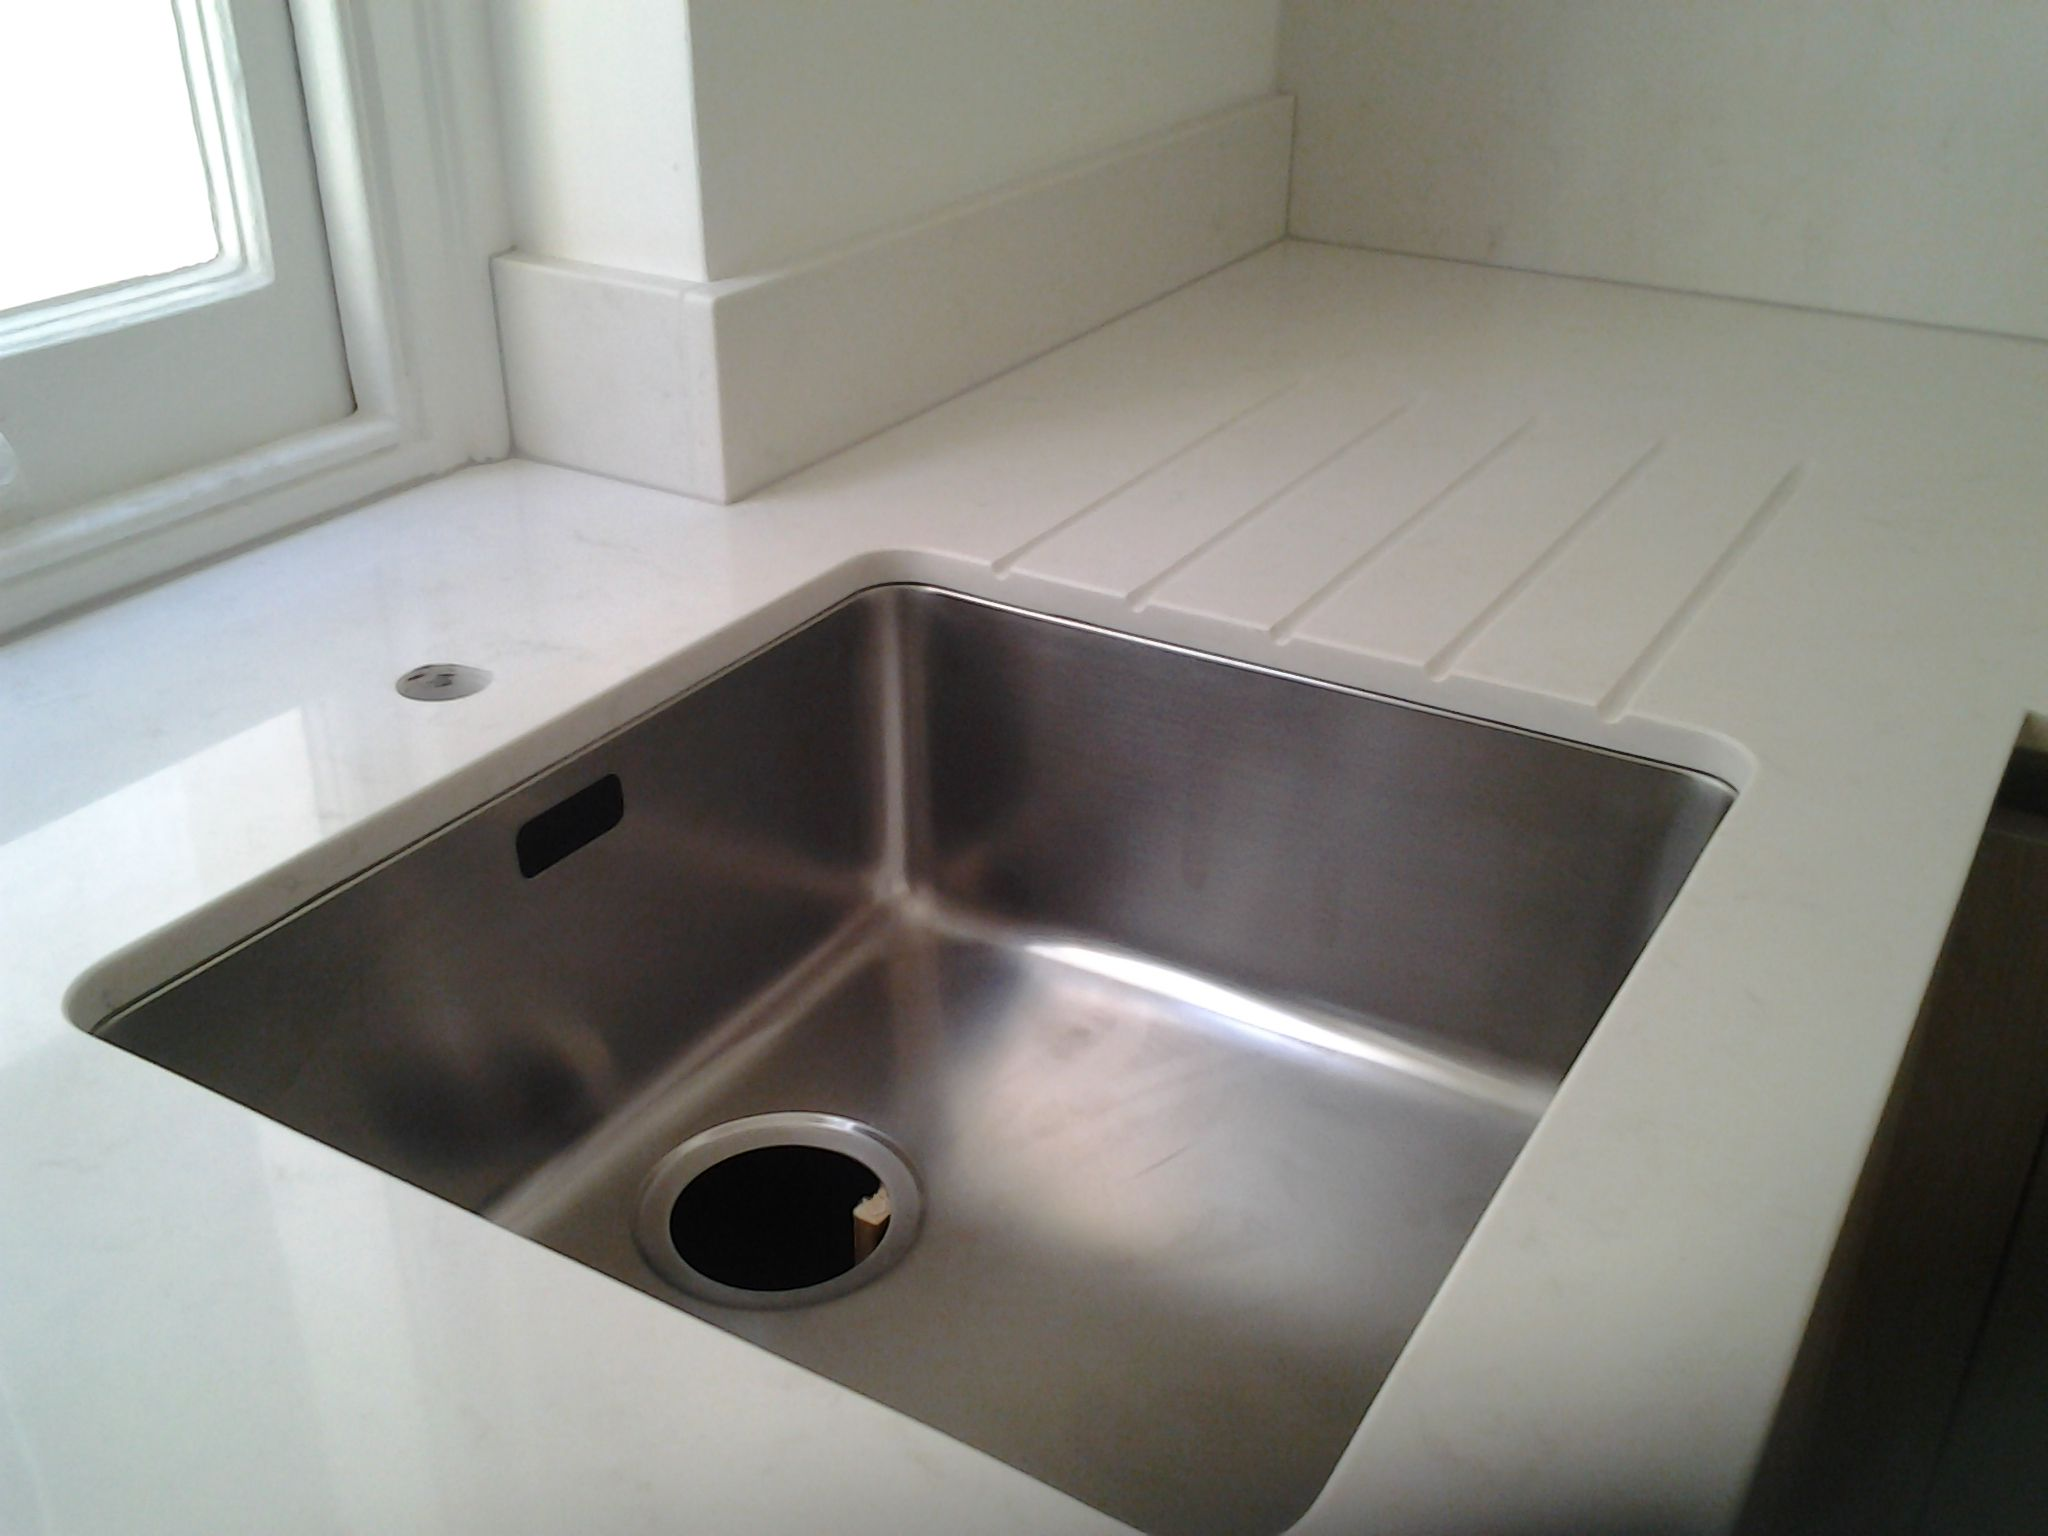 pac Carrara Quartz worktops with an undermount sink